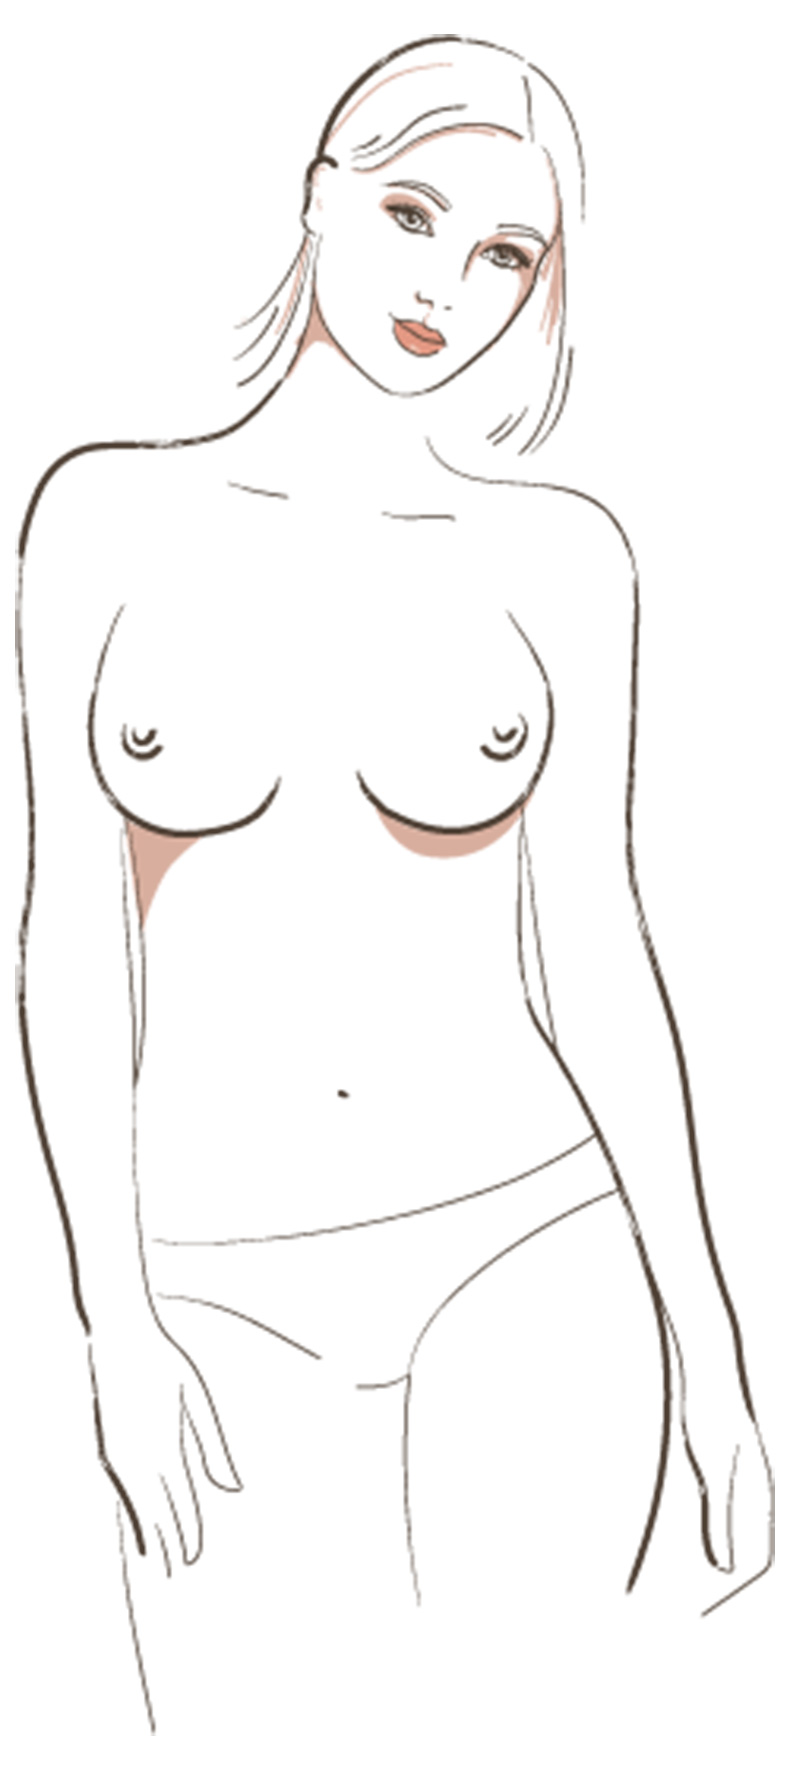 1456721080-syn-elm-1456588027-syn-cos-1456497676-boob-types-side-set